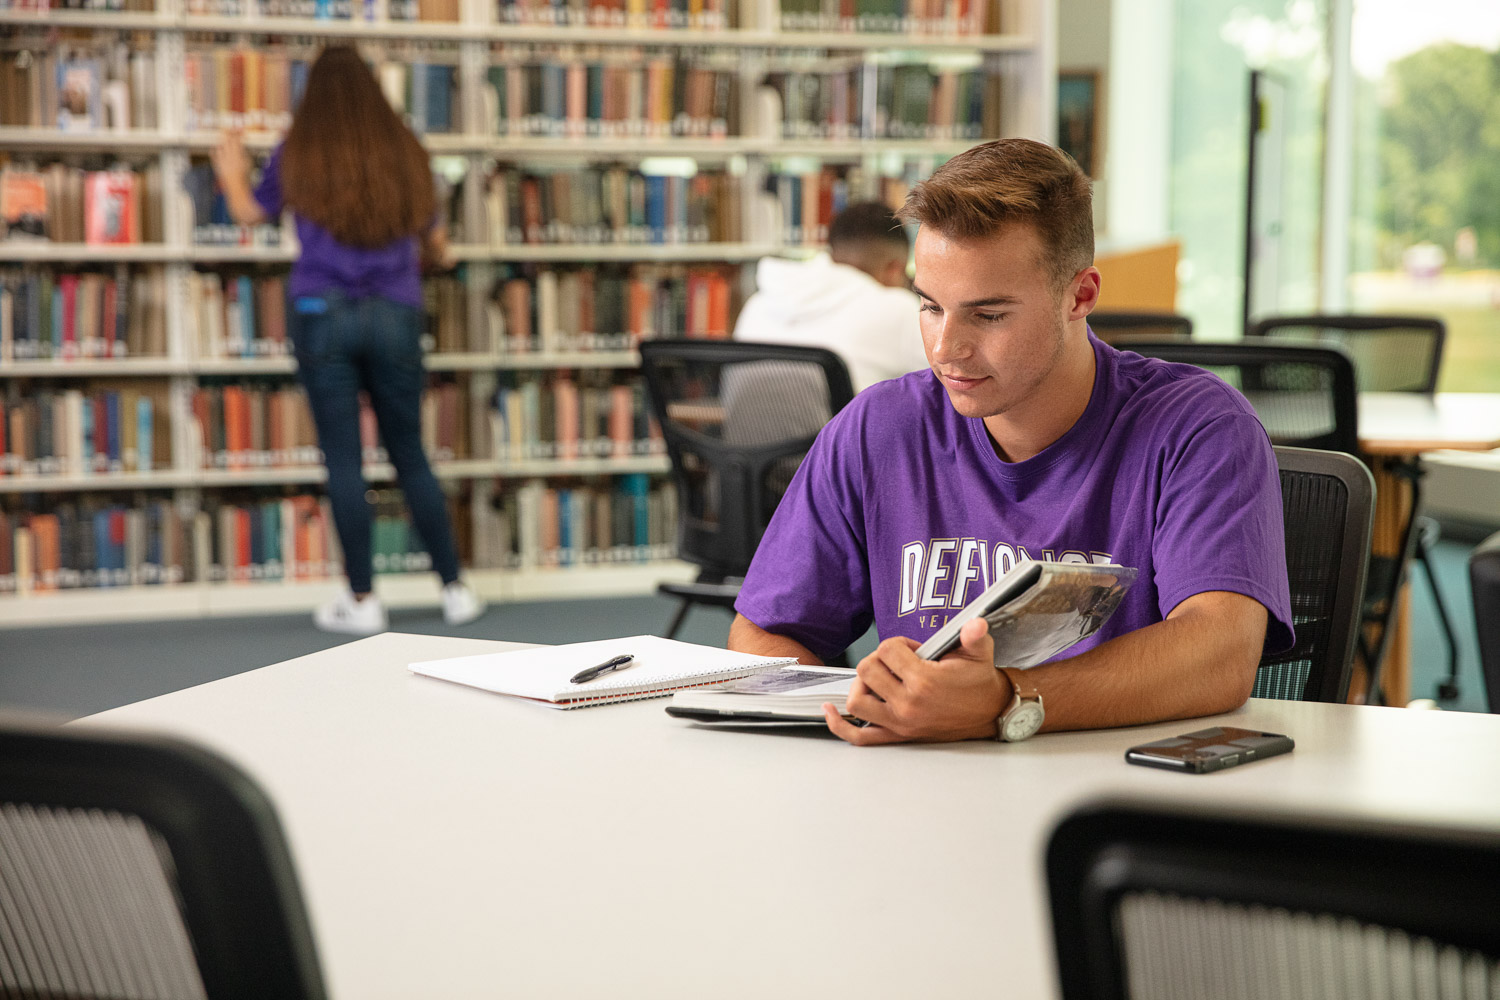 Defiance College student